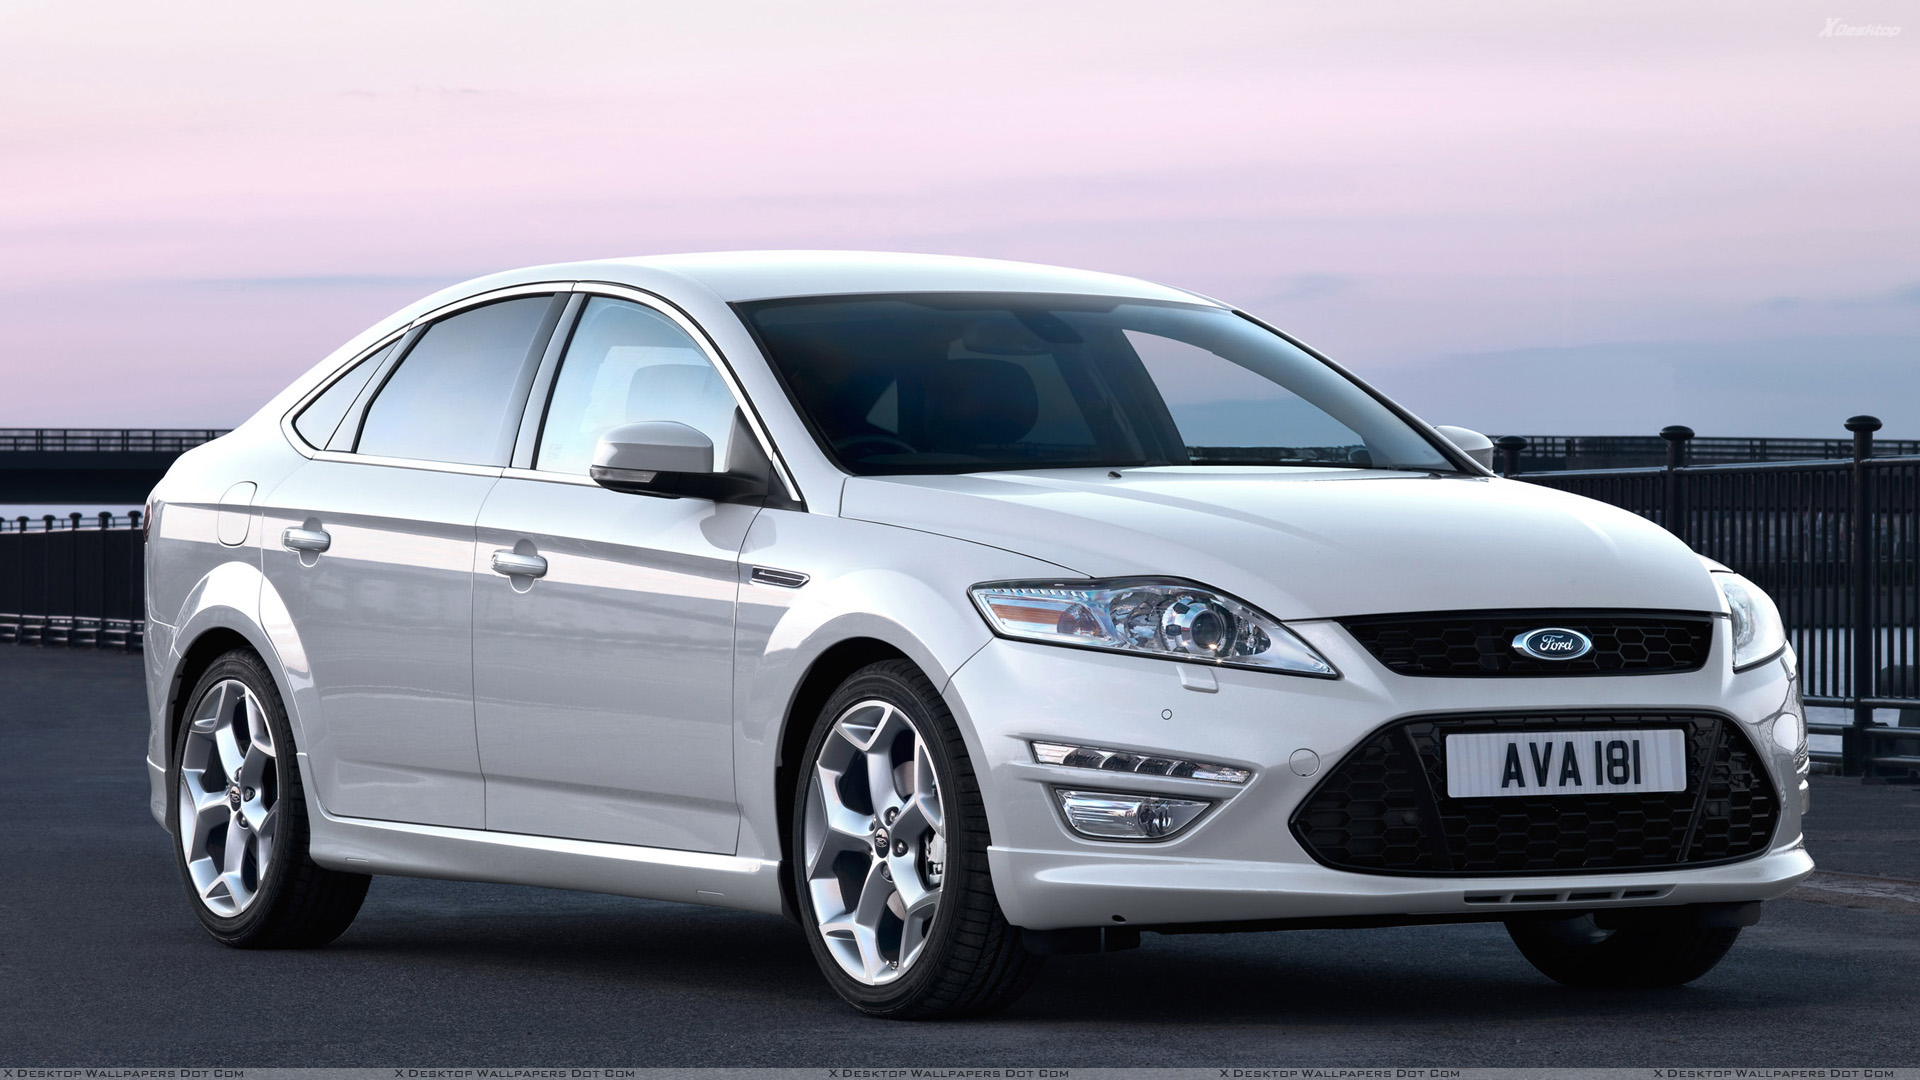 ford mondeo wallpapers photos images in hd. Black Bedroom Furniture Sets. Home Design Ideas